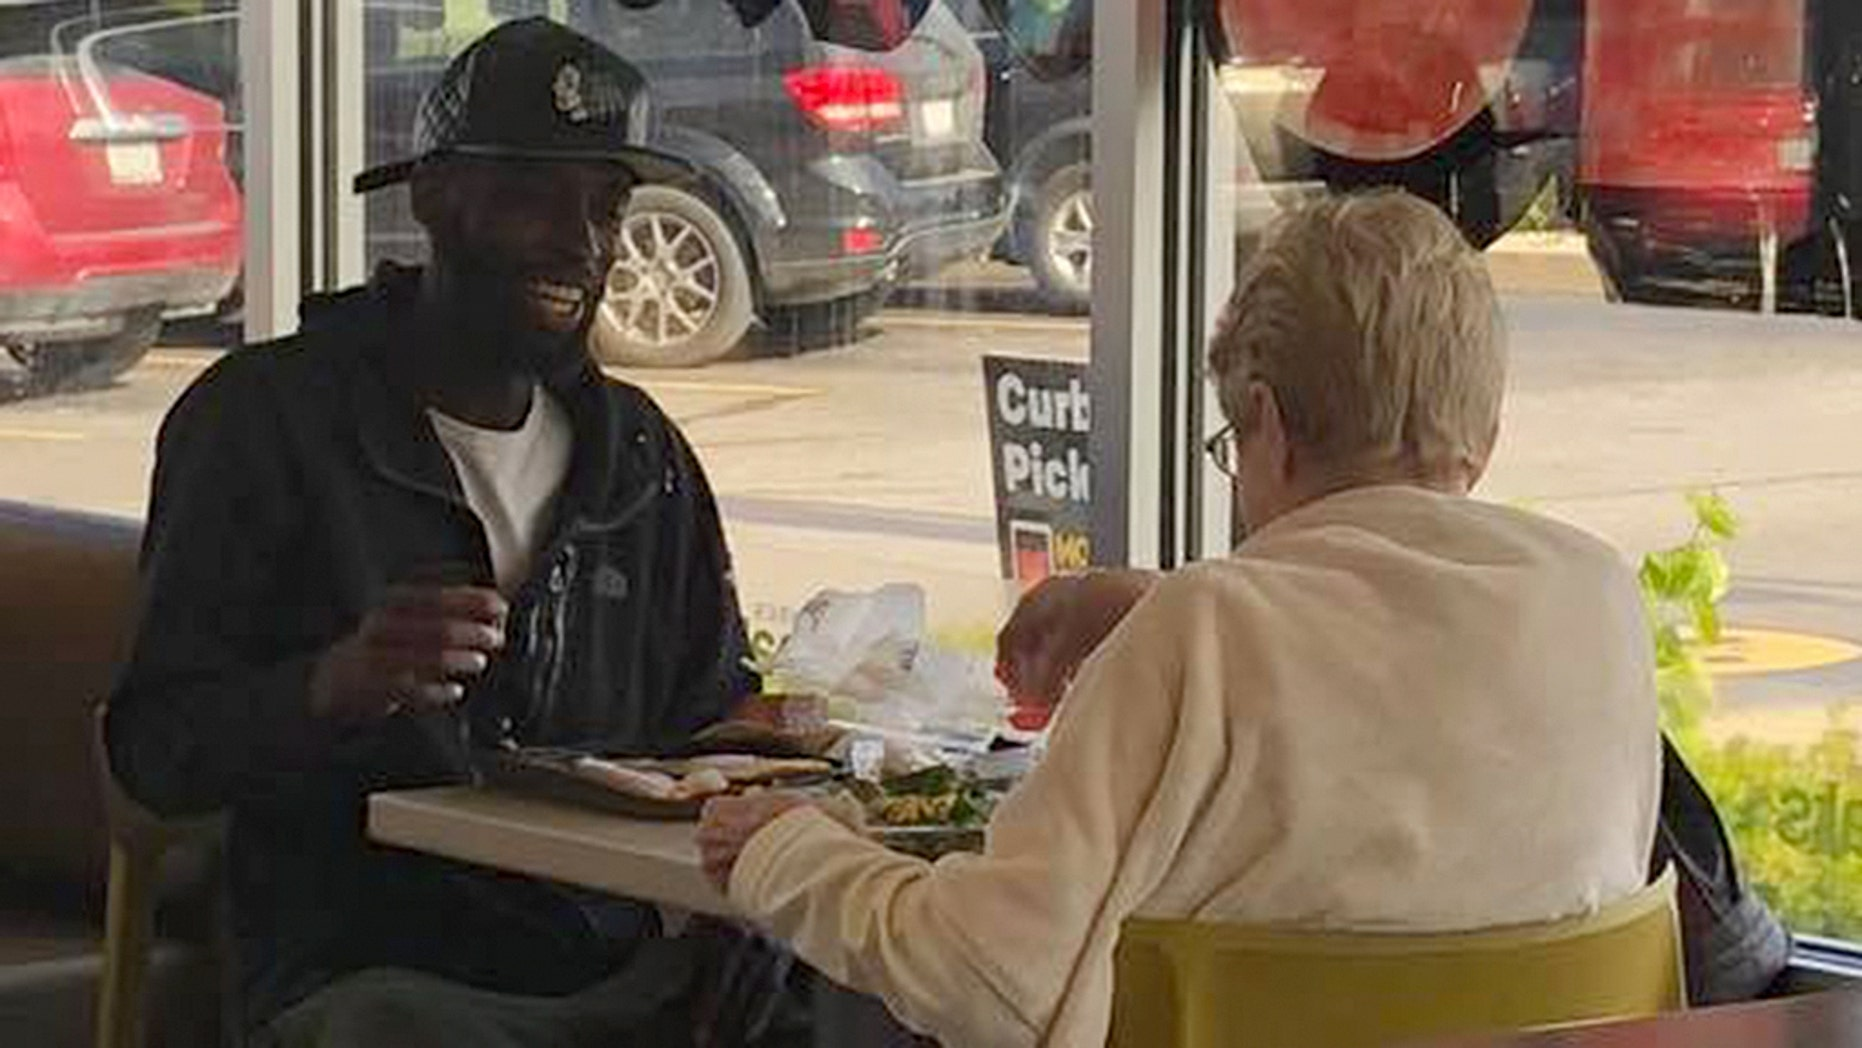 A pair of strangers sharing a meal at McDonald's has caught the attention of social media.